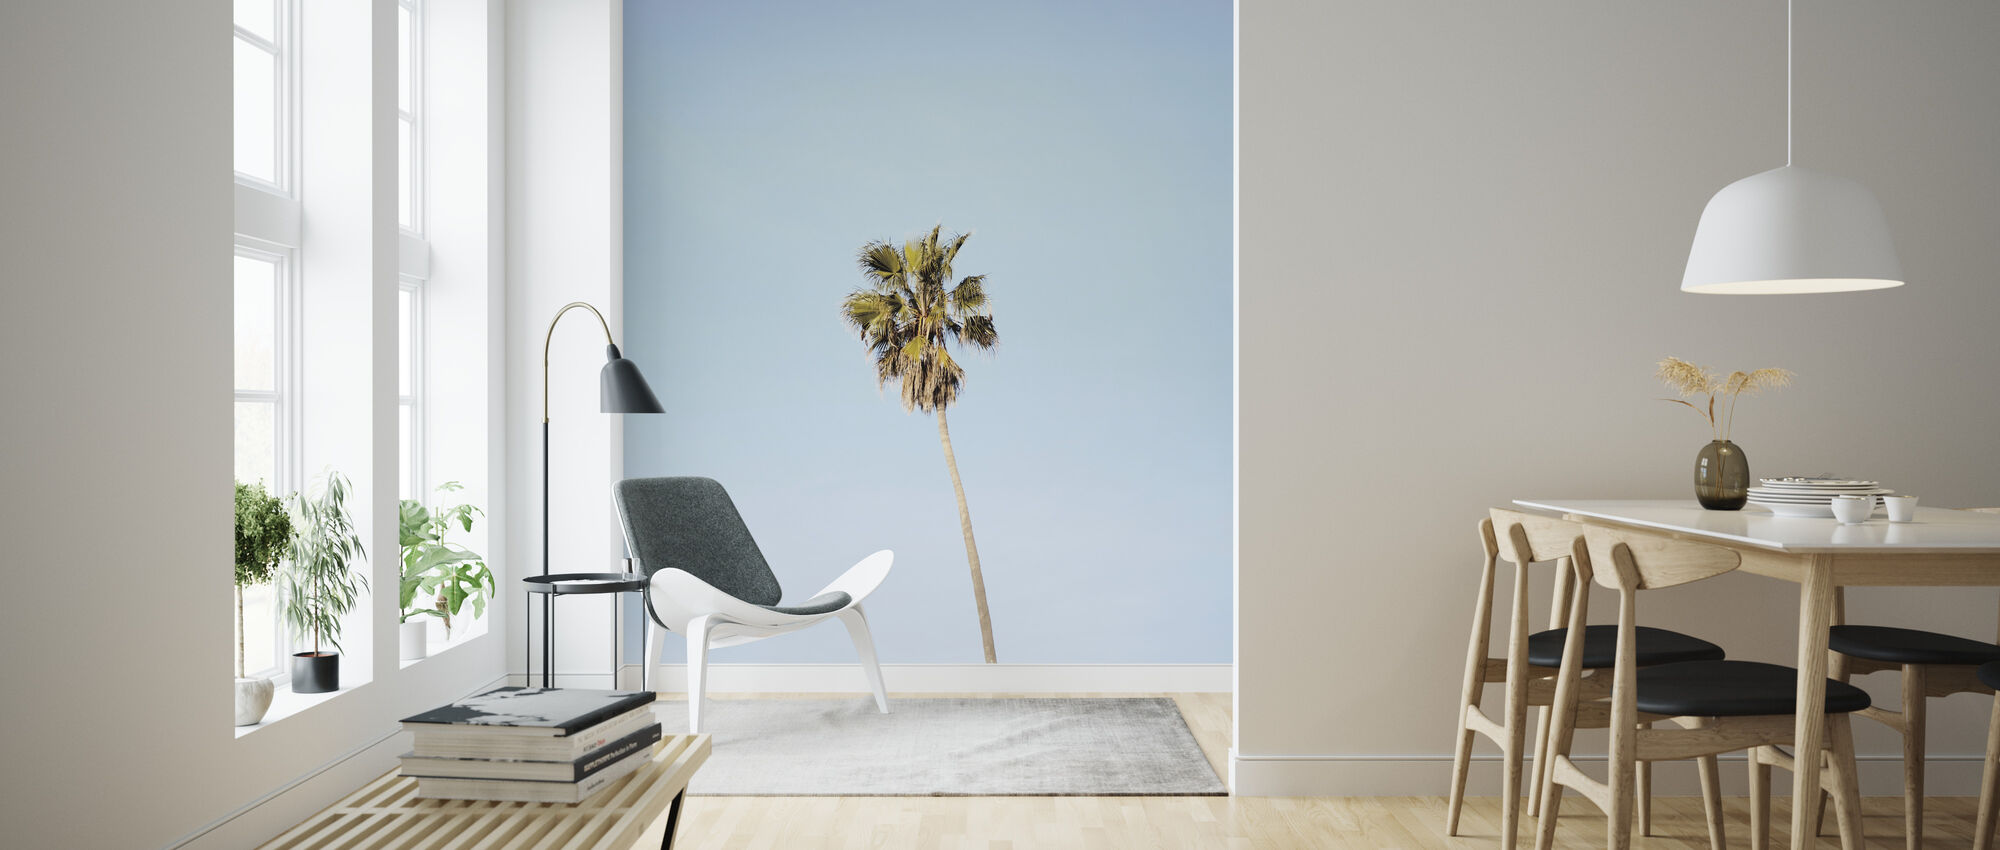 Endless Summer III - Wallpaper - Living Room